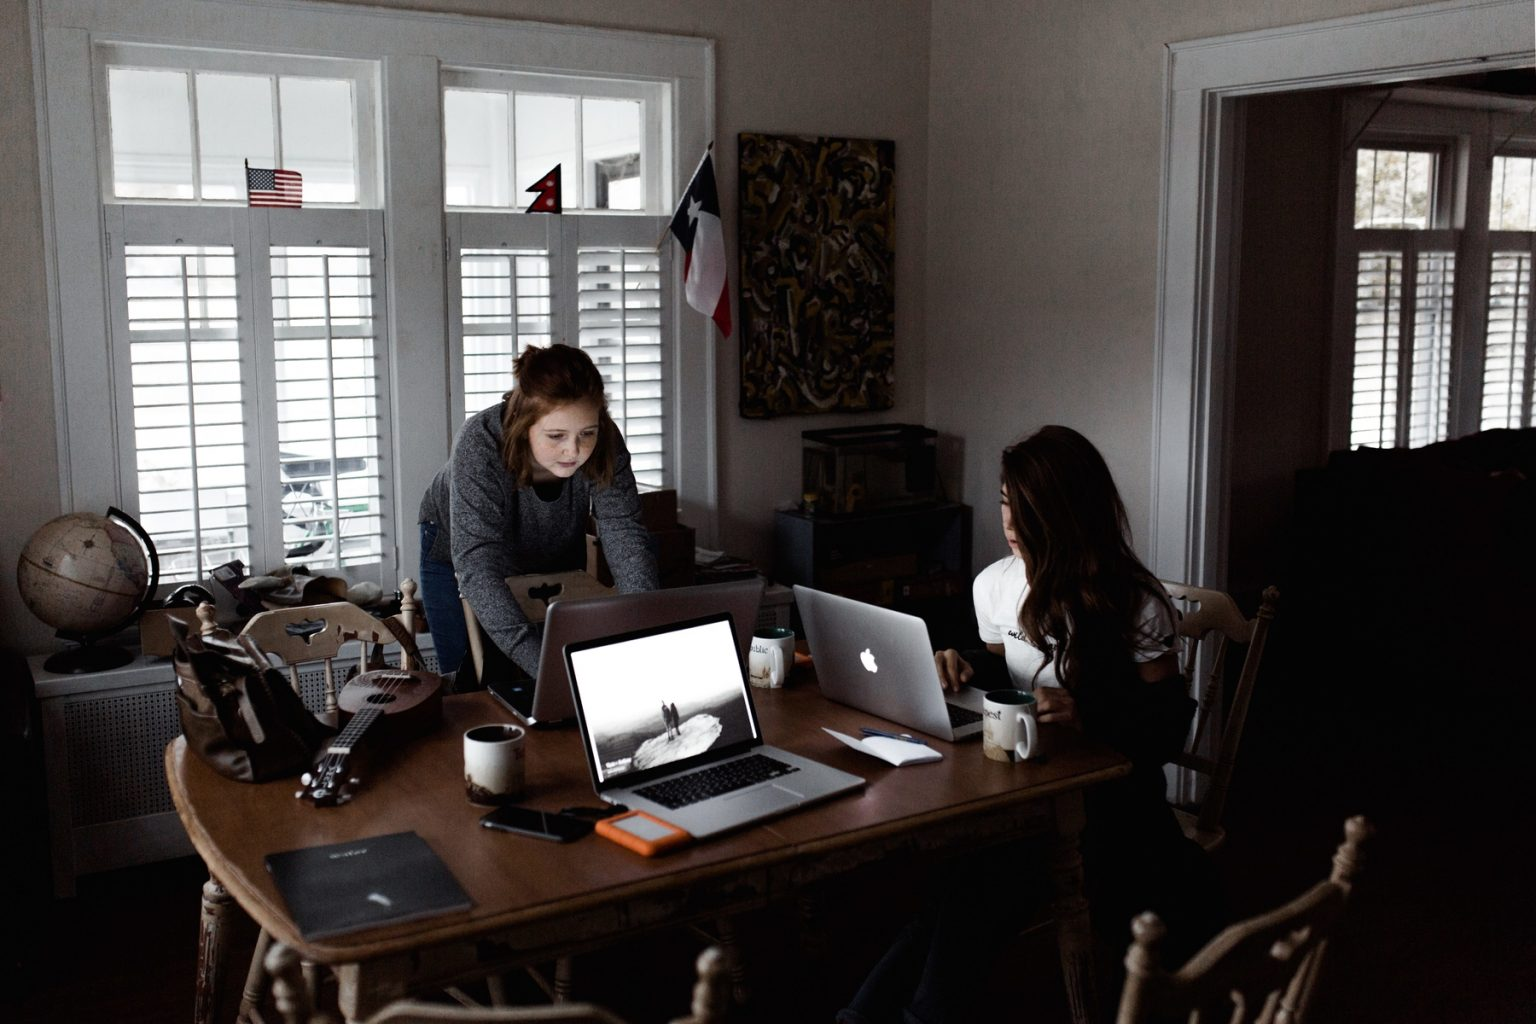 Benefits of Remote Work - How to build a successful team